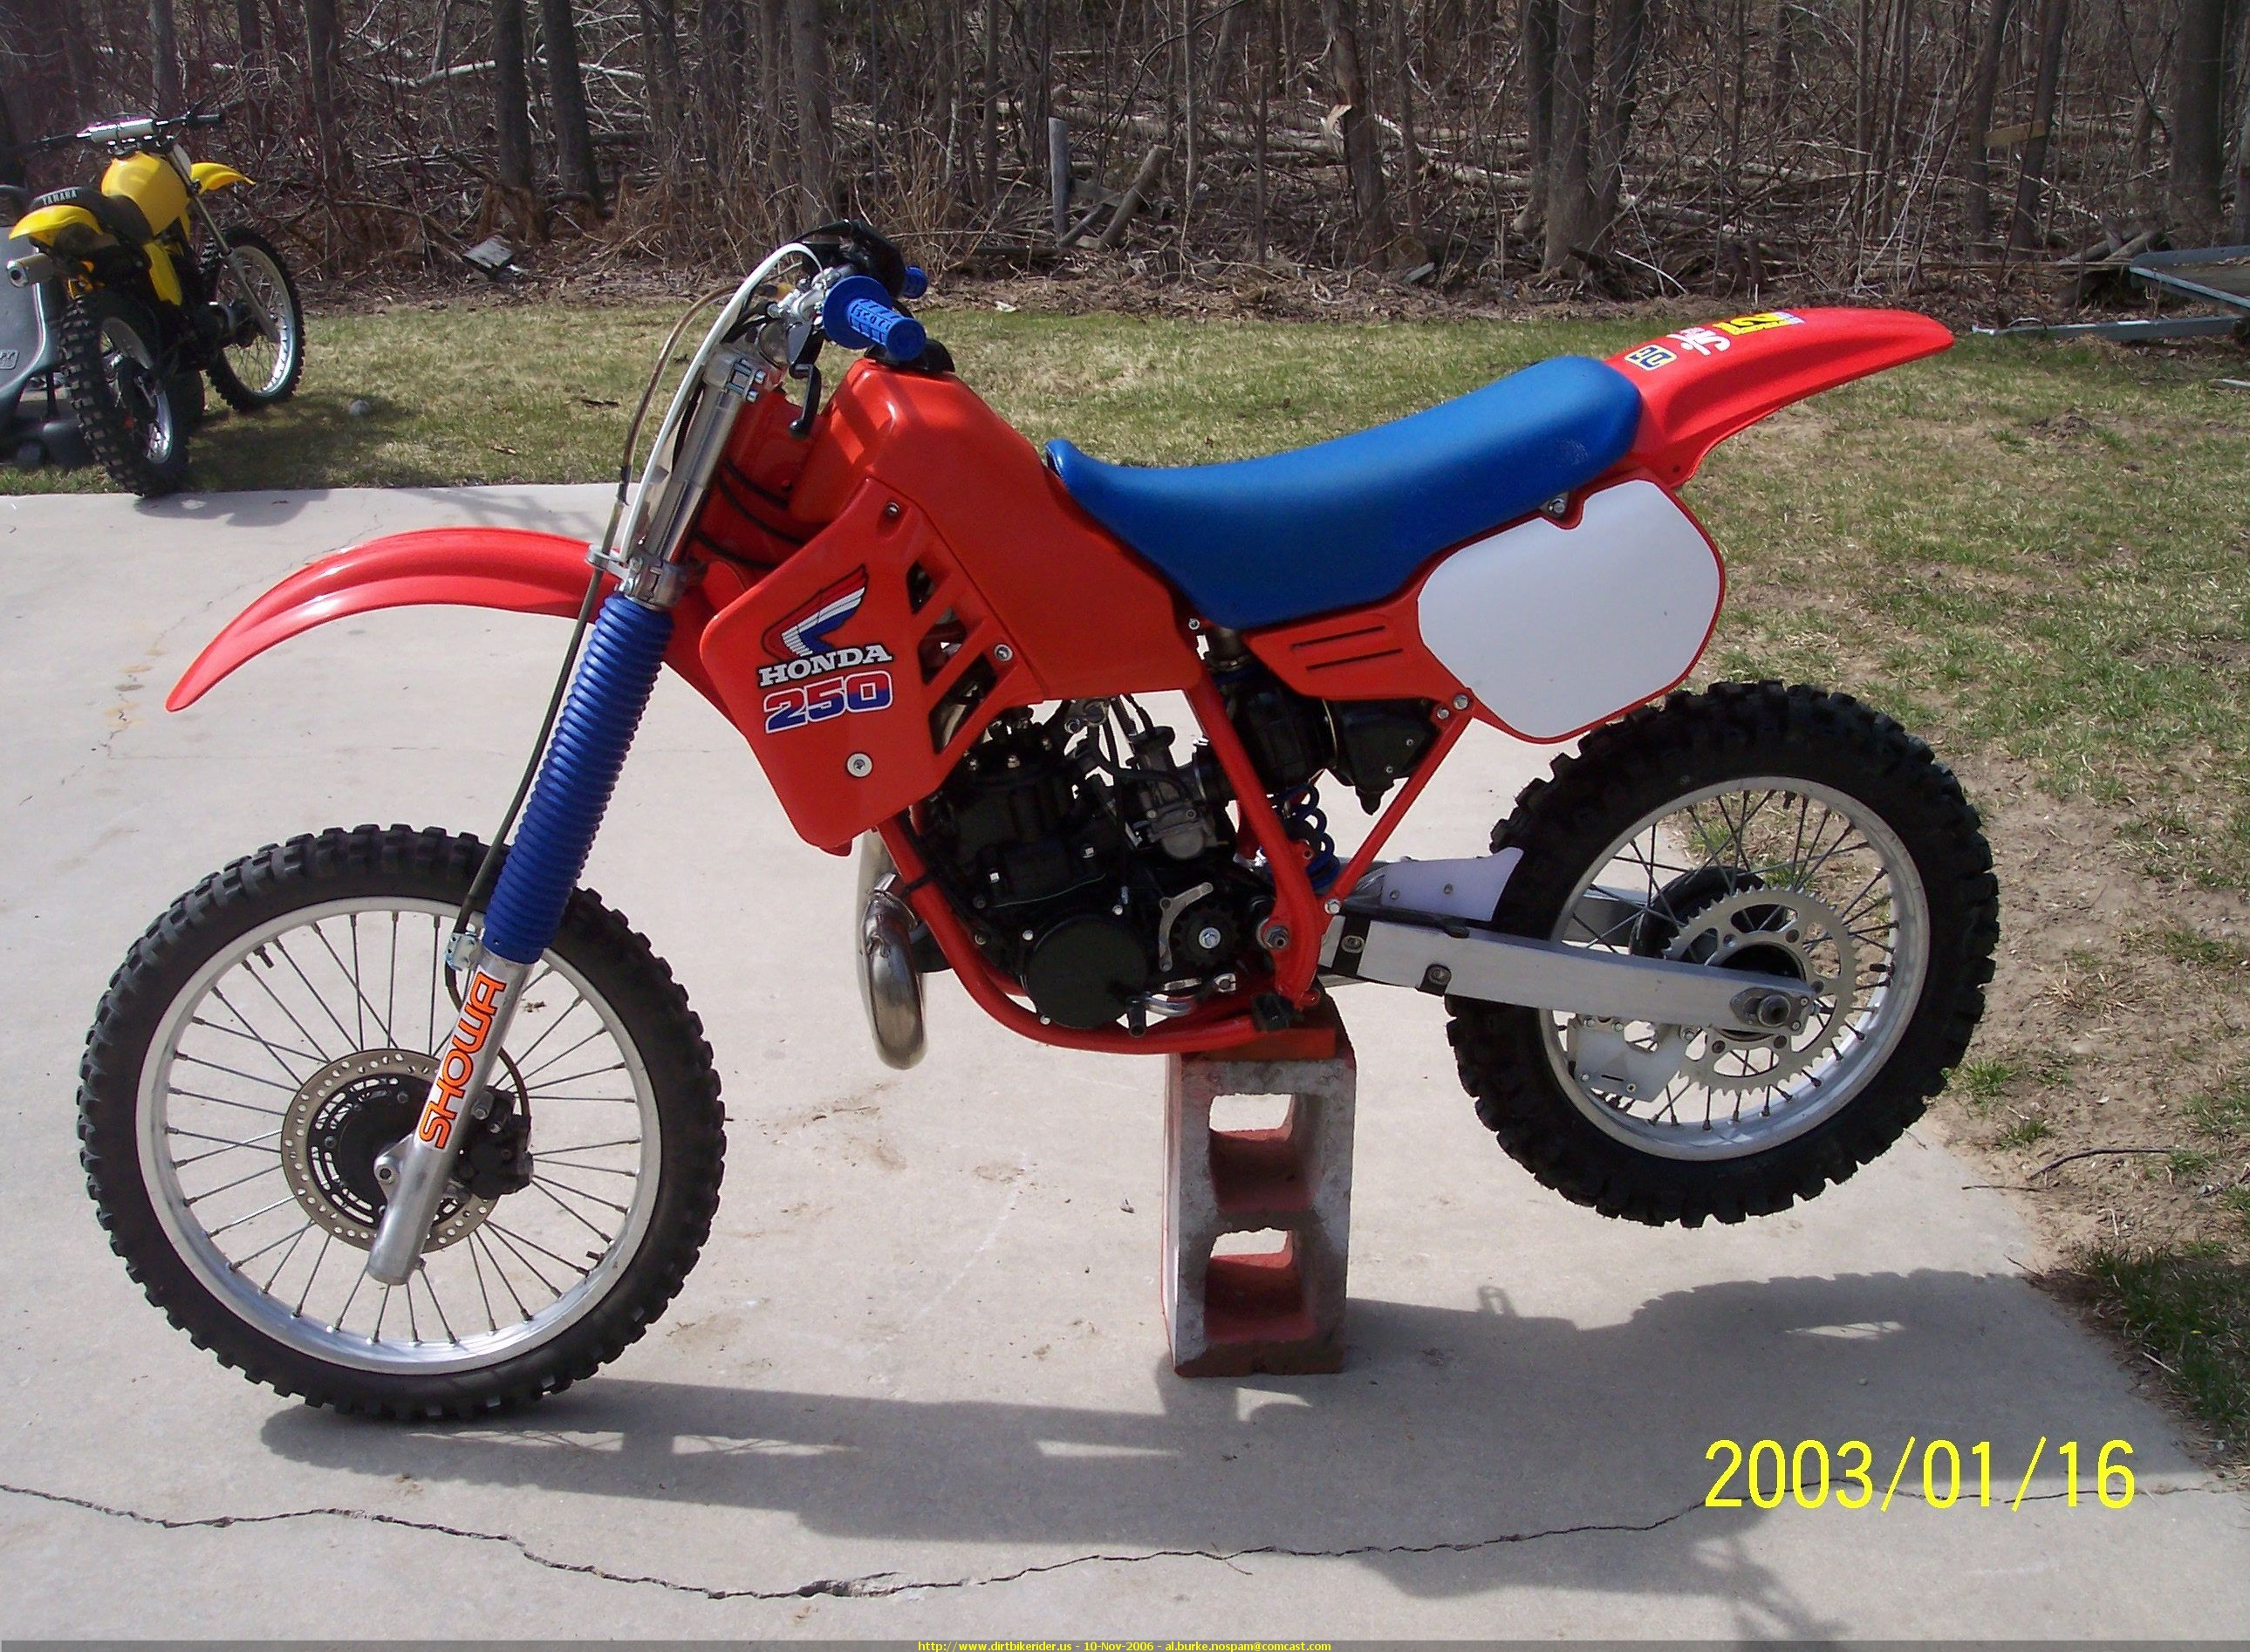 1985 CR250R 2-stroke Photo: dirtbikerider